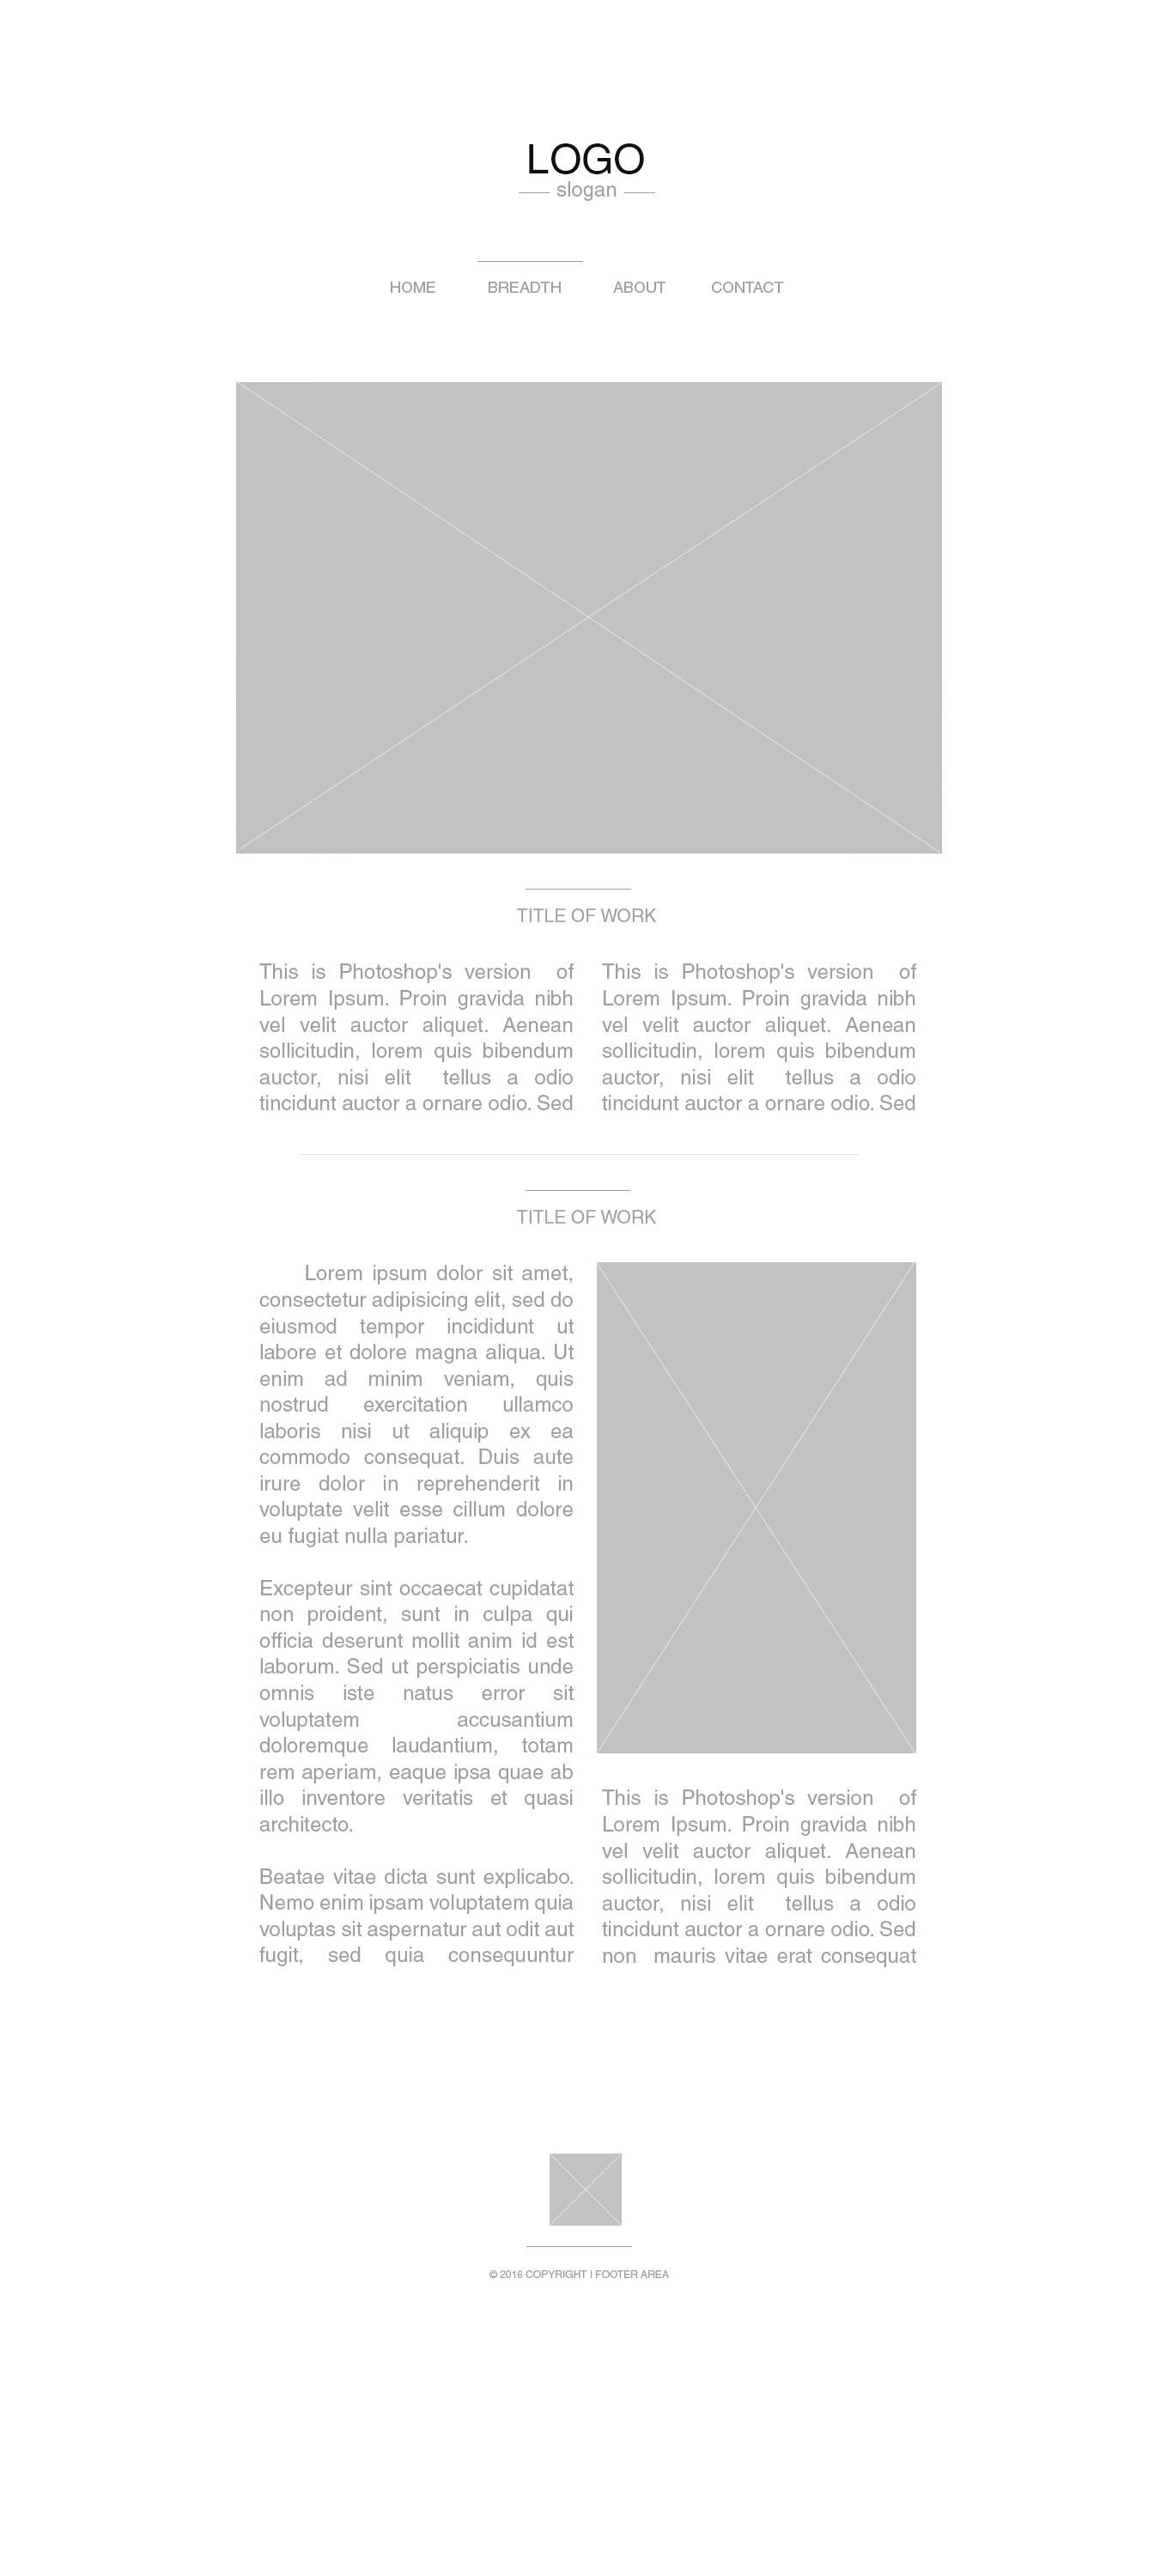 Mybreadth-images2-wireframe